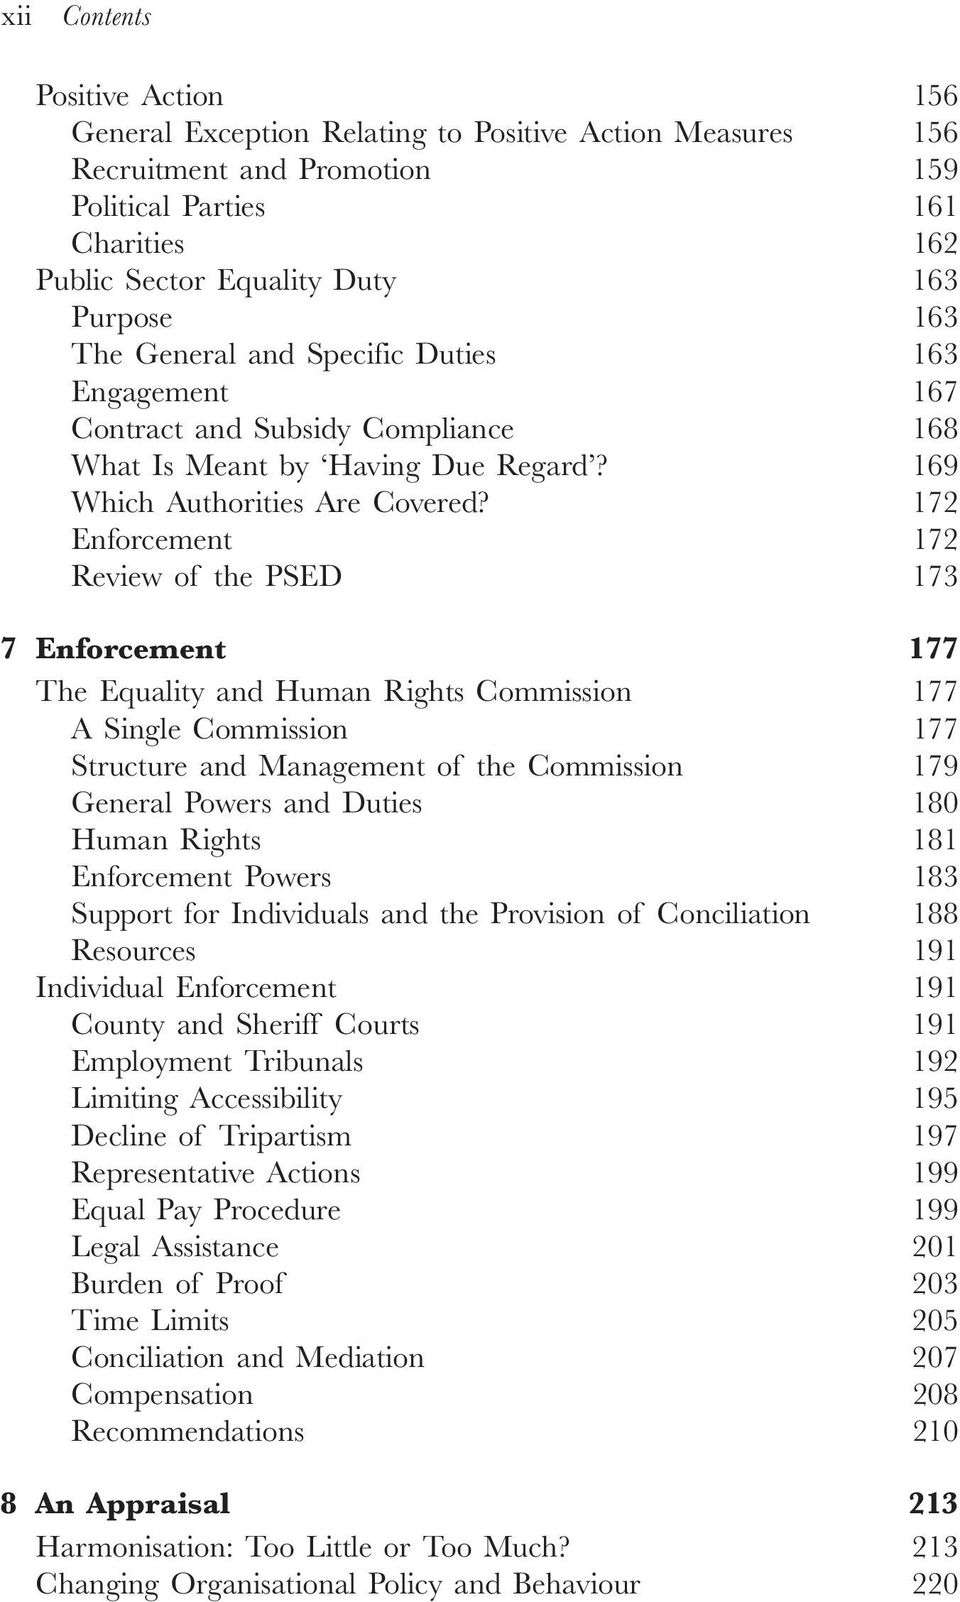 172 Enforcement 172 Review of the PSED 173 7 Enforcement 177 The Equality and Human Rights Commission 177 A Single Commission 177 Structure and Management of the Commission 179 General Powers and